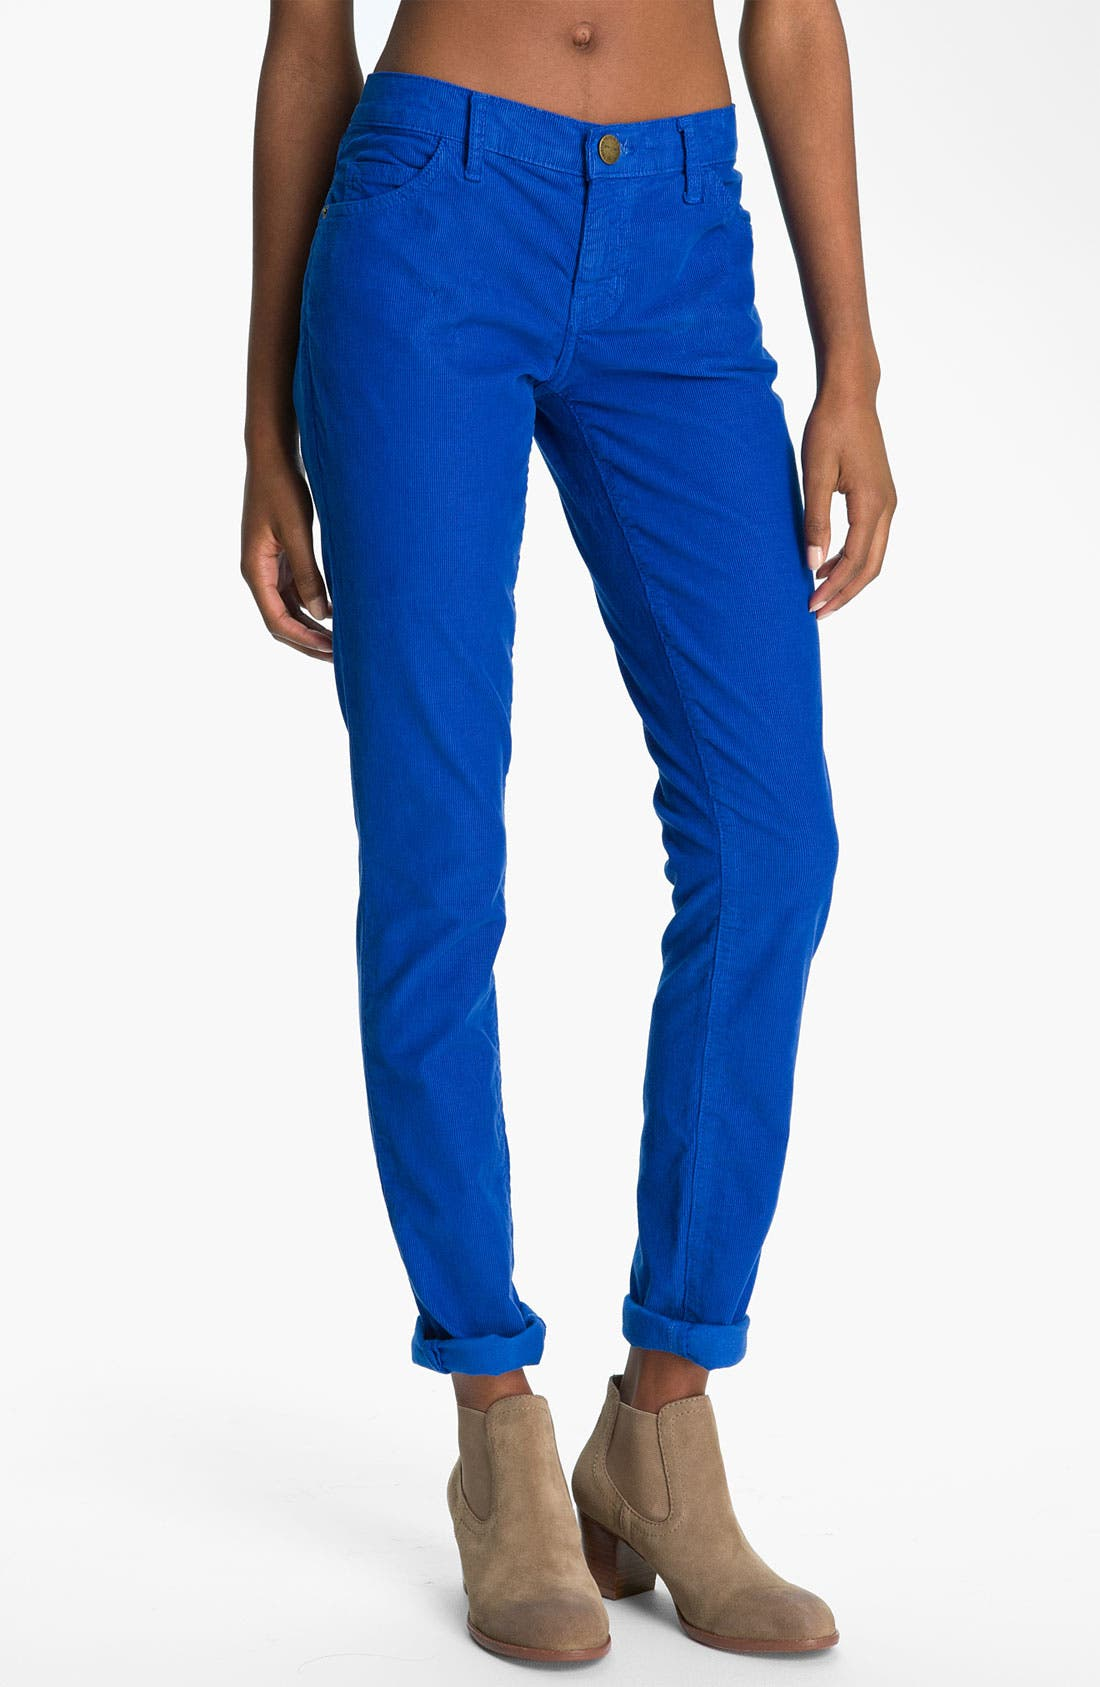 Alternate Image 1 Selected - Current/Elliott 'The Skinny' Stretch Corduroy Pants